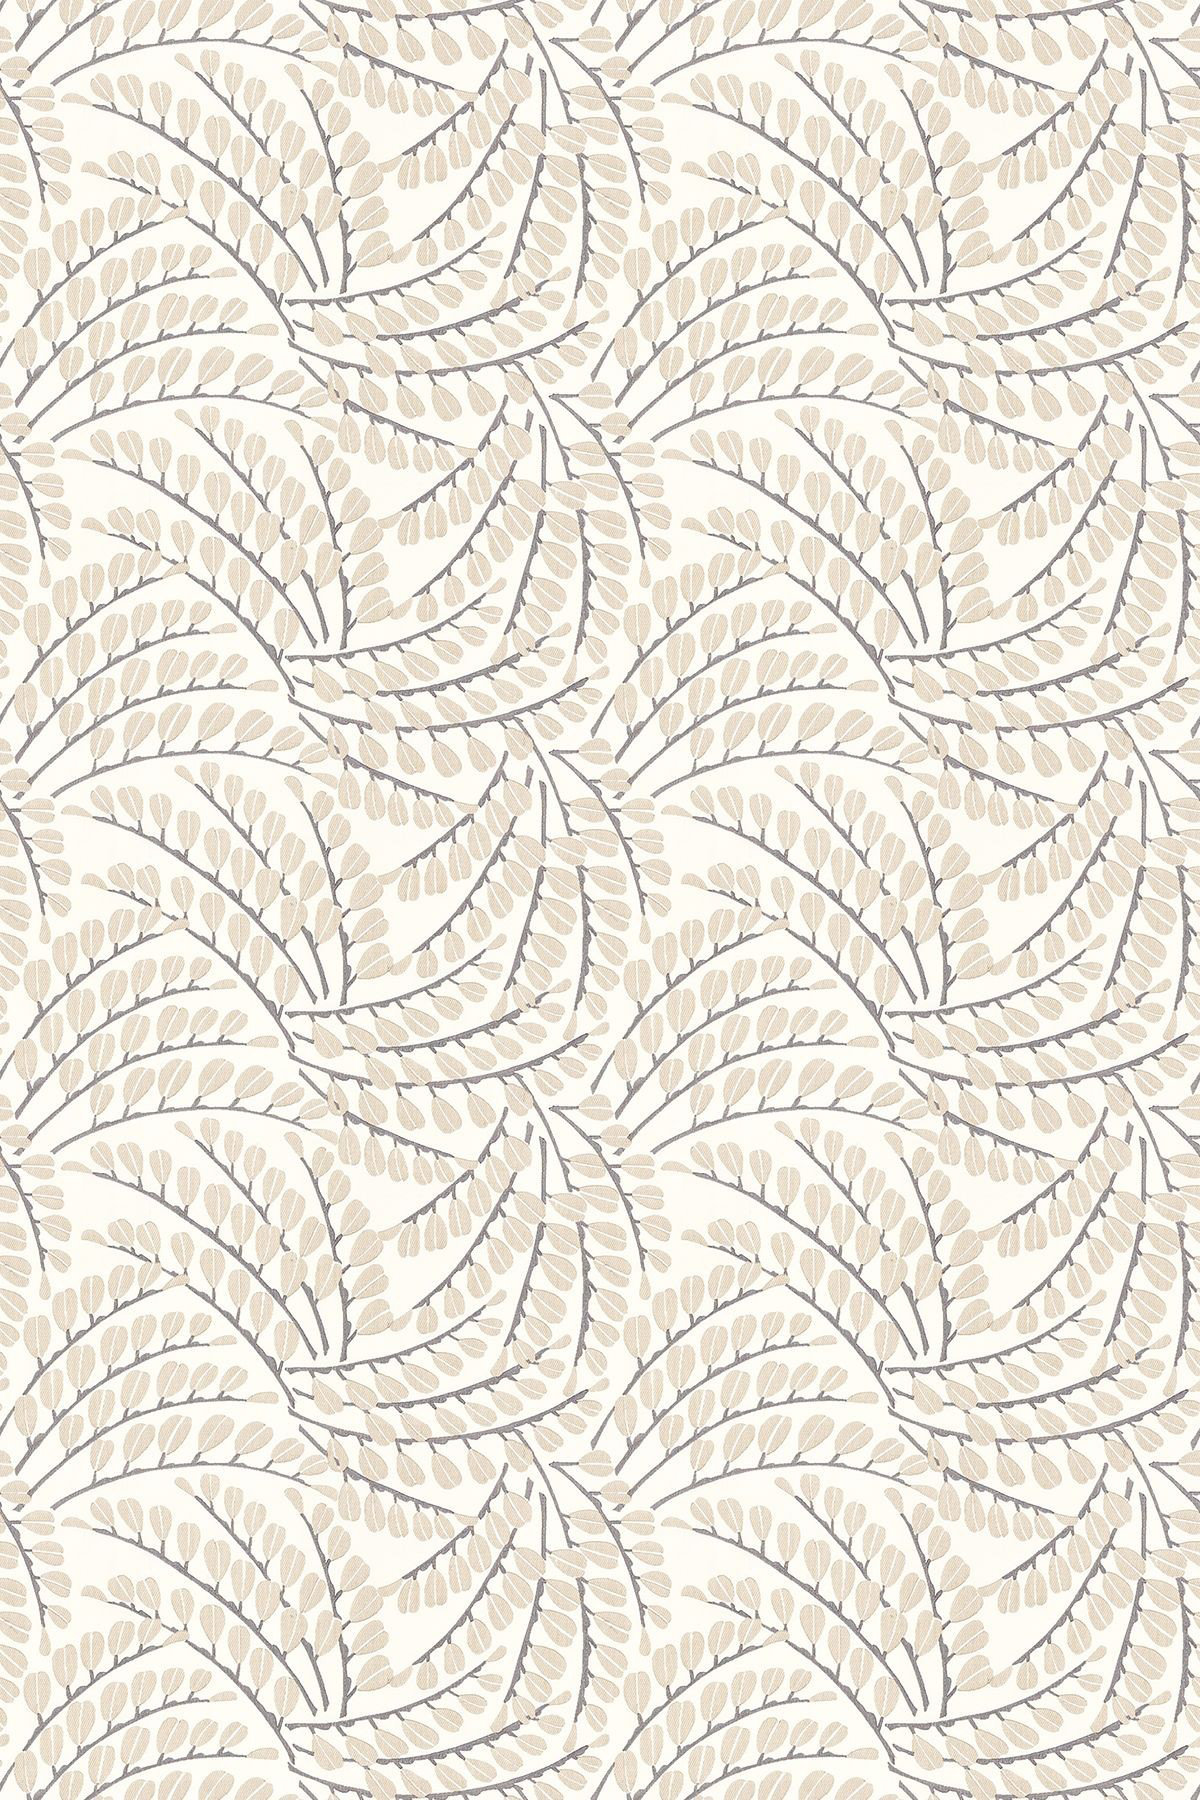 Image of Harlequin Fabric Anais, 130889